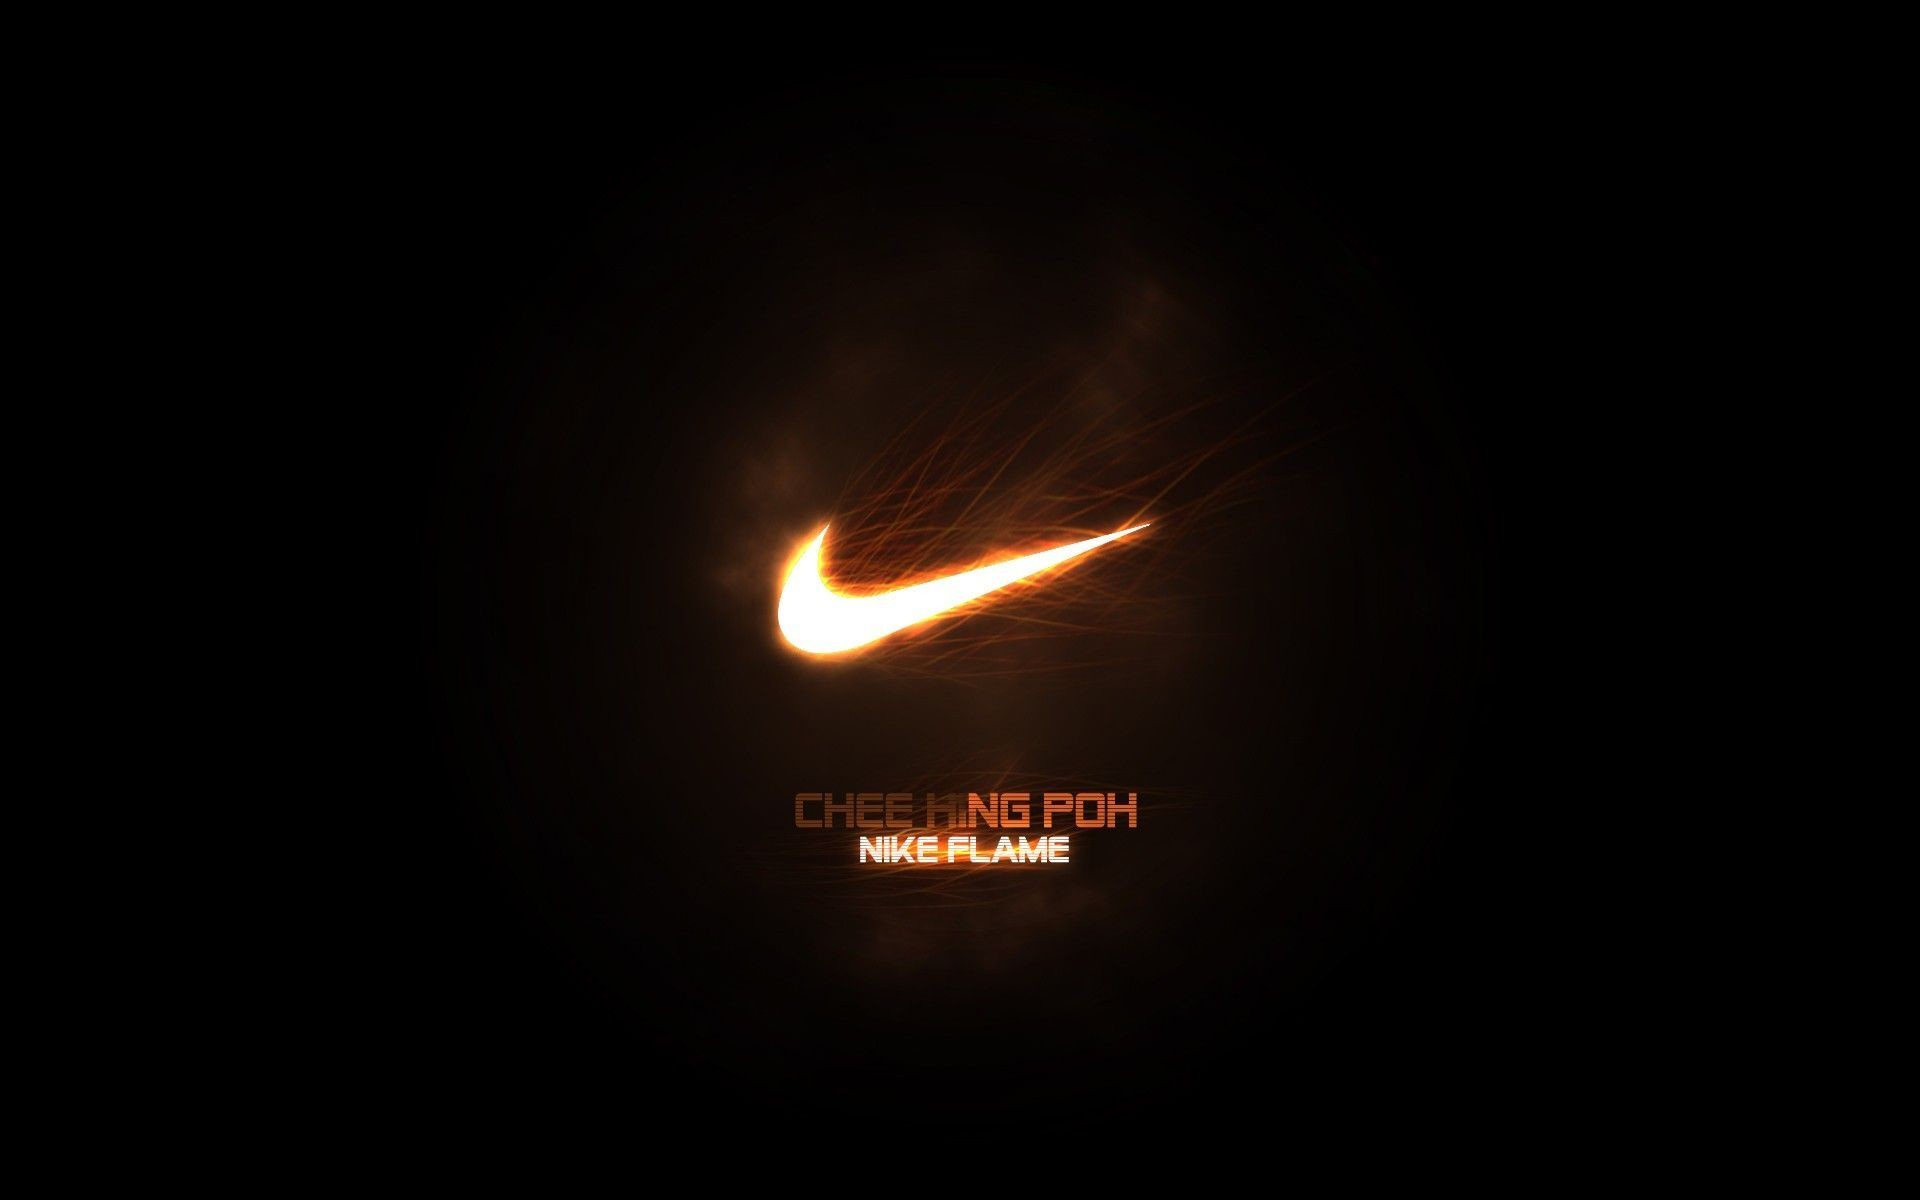 1920x1200 black fire nike logos background #b_pO